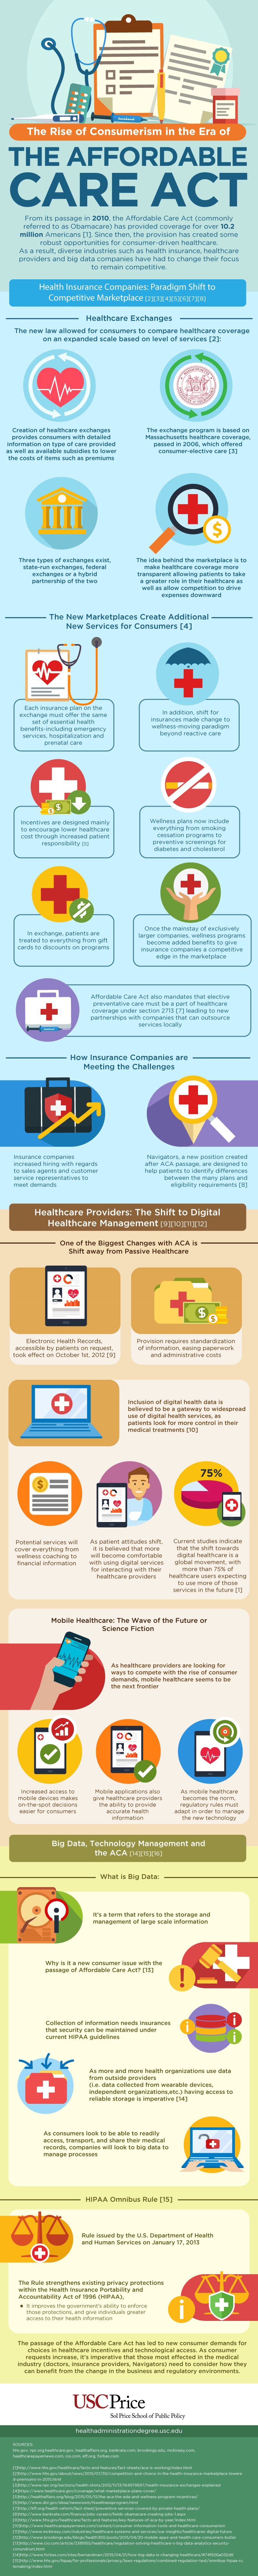 Infographic - Affordable Care Act